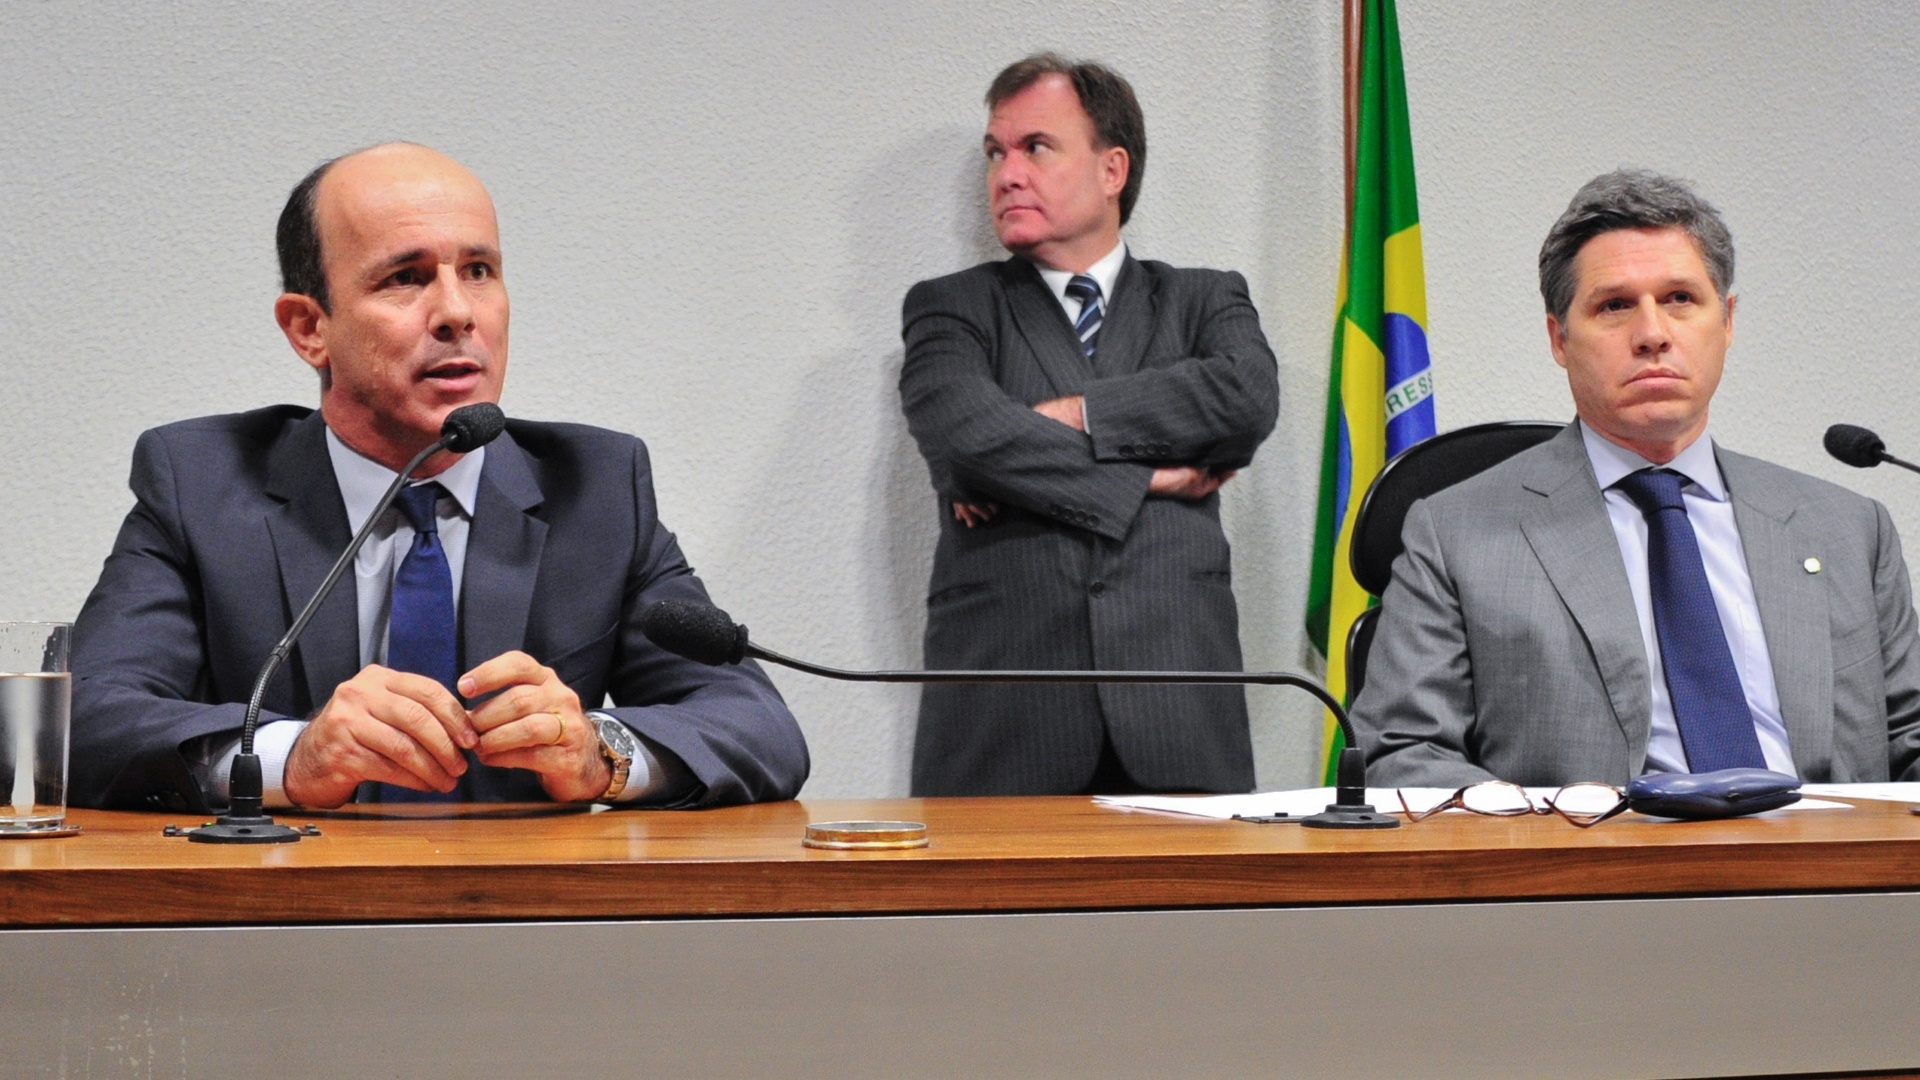 15.ago.2012 - Ex-presidente do Departamento de Trnsito (Detran) de Gois, Edivaldo Cardoso de Paula ( esq.) diz que no responder perguntas durante reunio da CPI do Cachoeira nesta quarta-feira (15).  direita, o vice-presidente da CPI, deputado federal Paulo Teixeira (PT-SP)